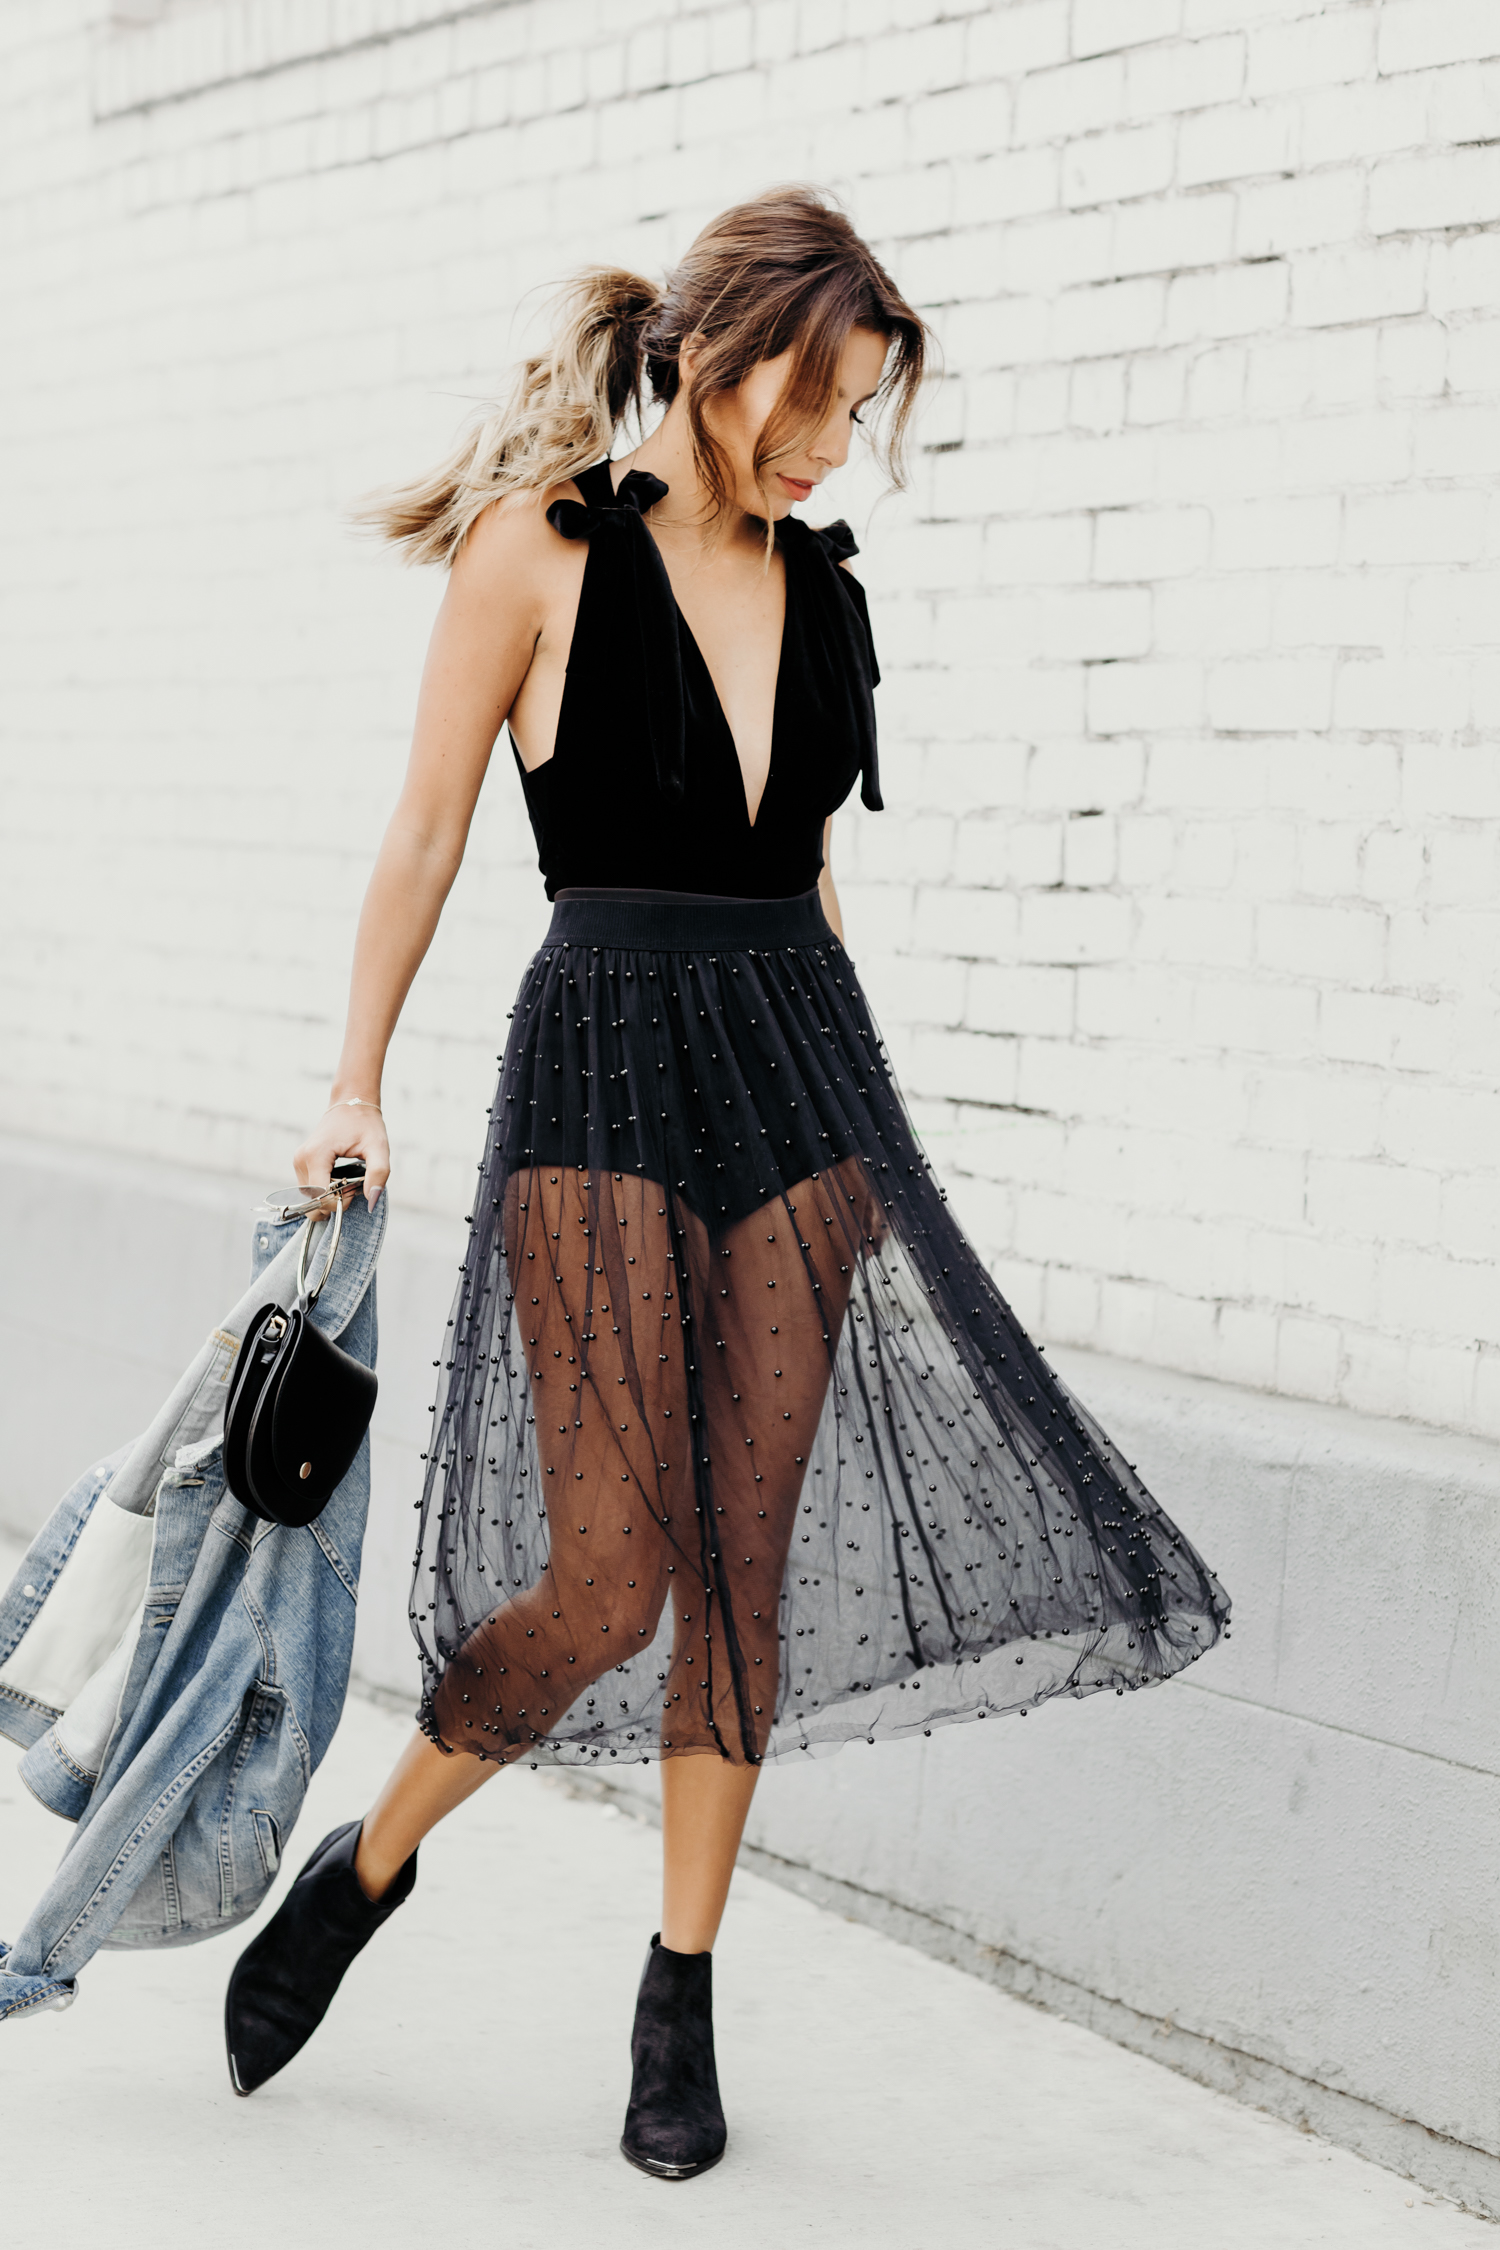 sheer pearl skirt from zara, how to wear boots with skirts